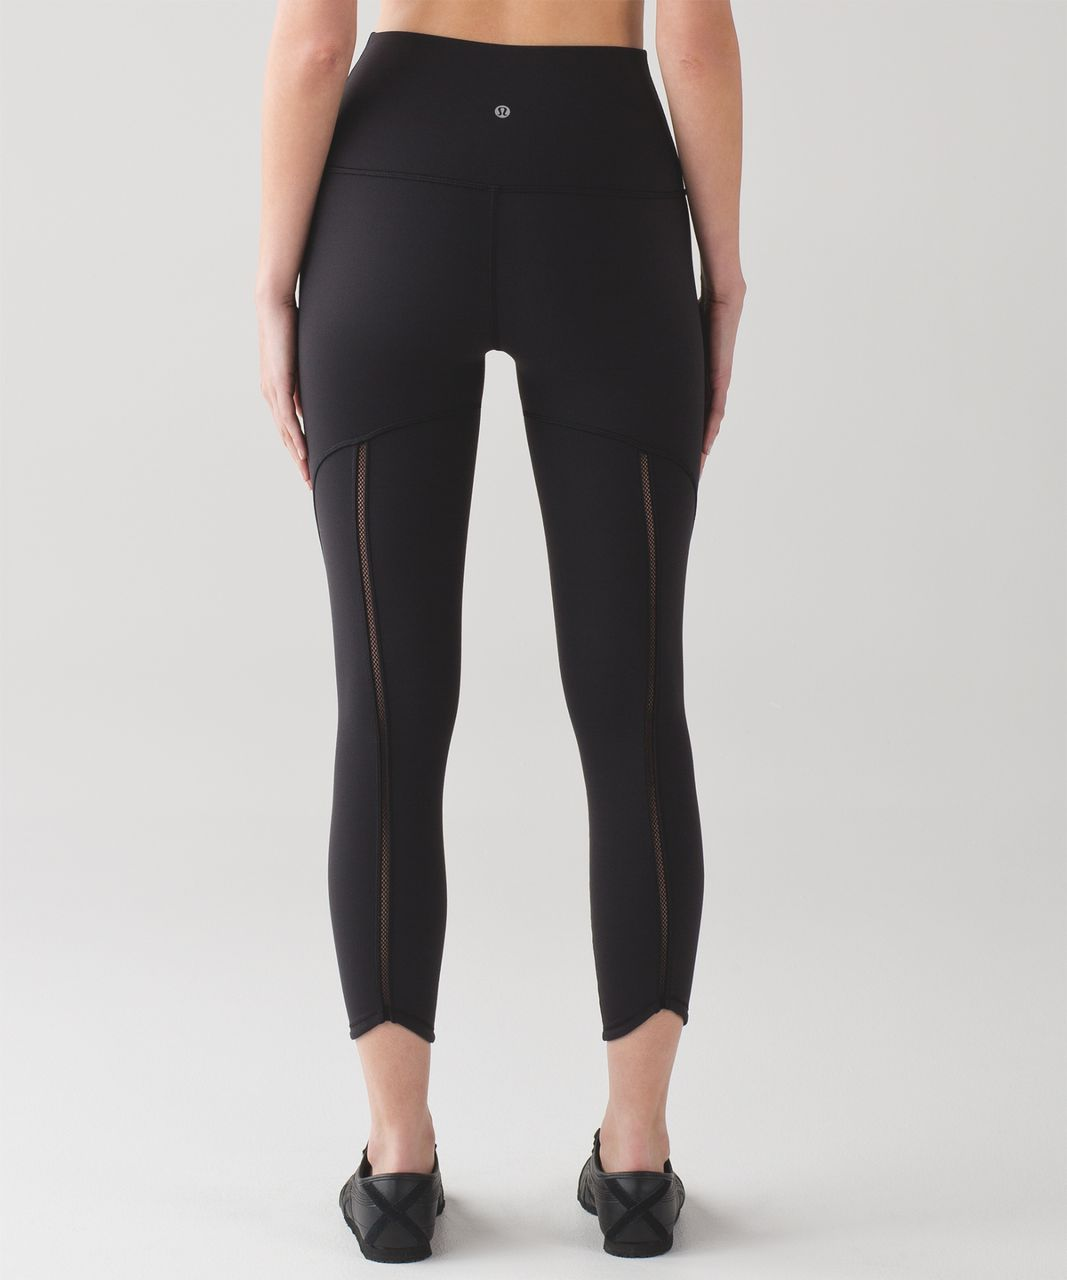 Lululemon Wunder Under Pant (Hi-Rise) (Mesh) - Black